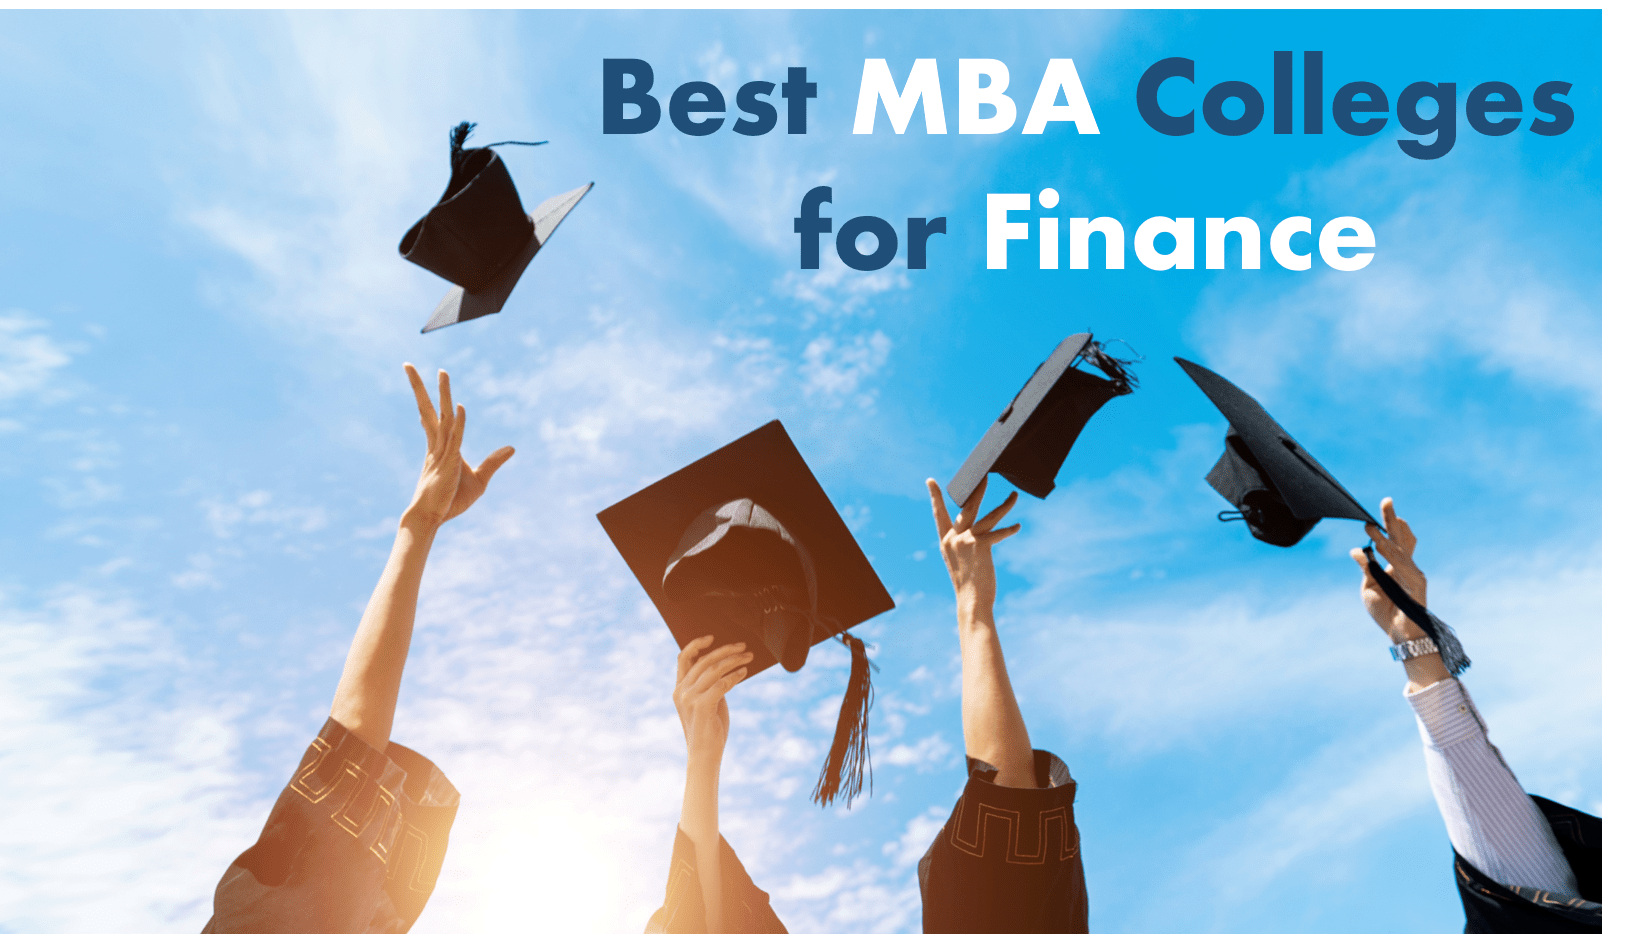 Best MBA colleges for Finance